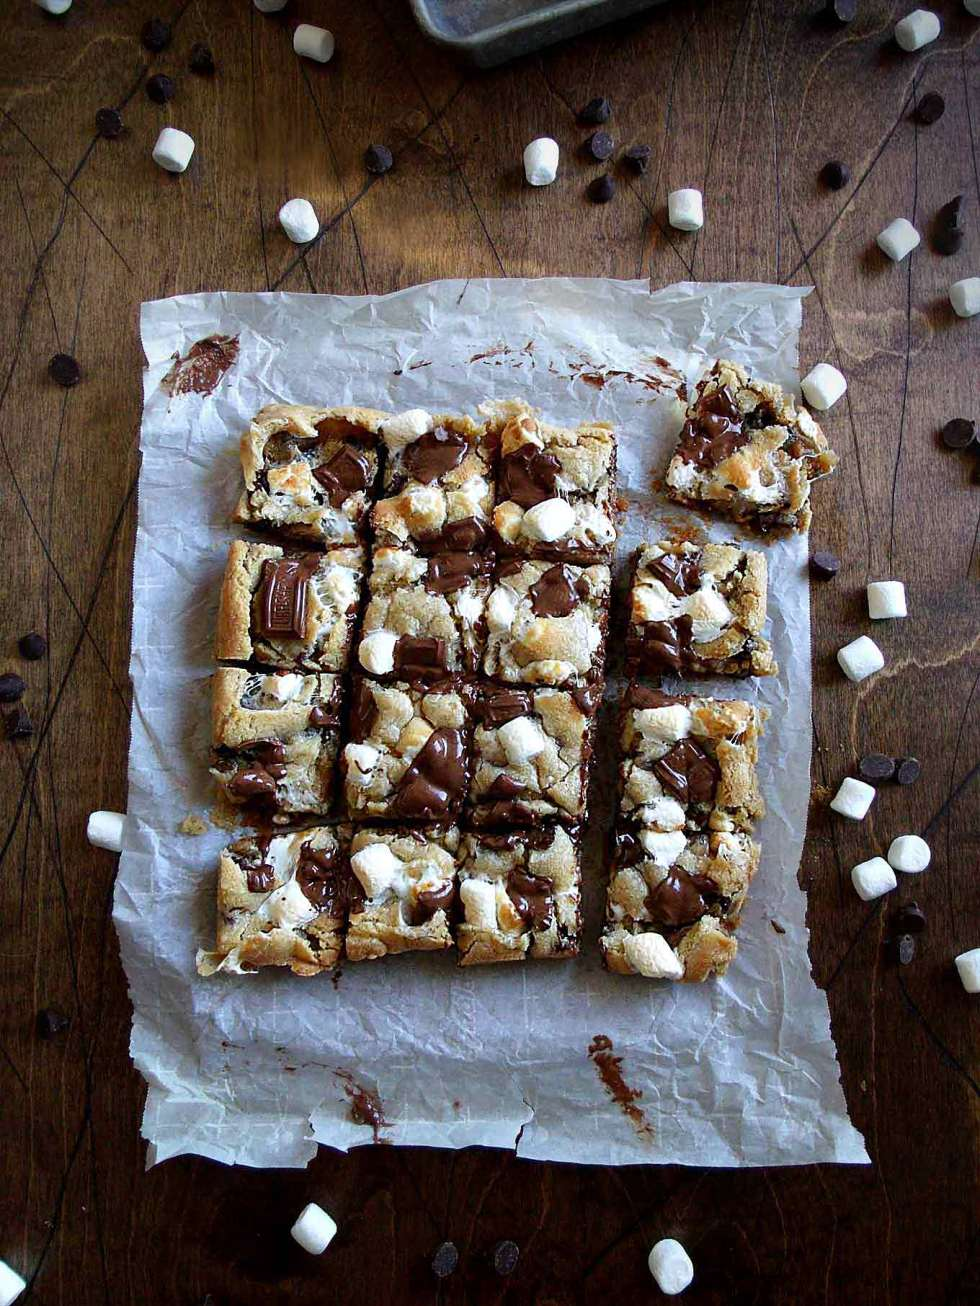 S'mores Cookies - Graham cracker crumbs, toasted marshmallow, and gooey chocolate?? The perfect fix when you're too far from the campfire!